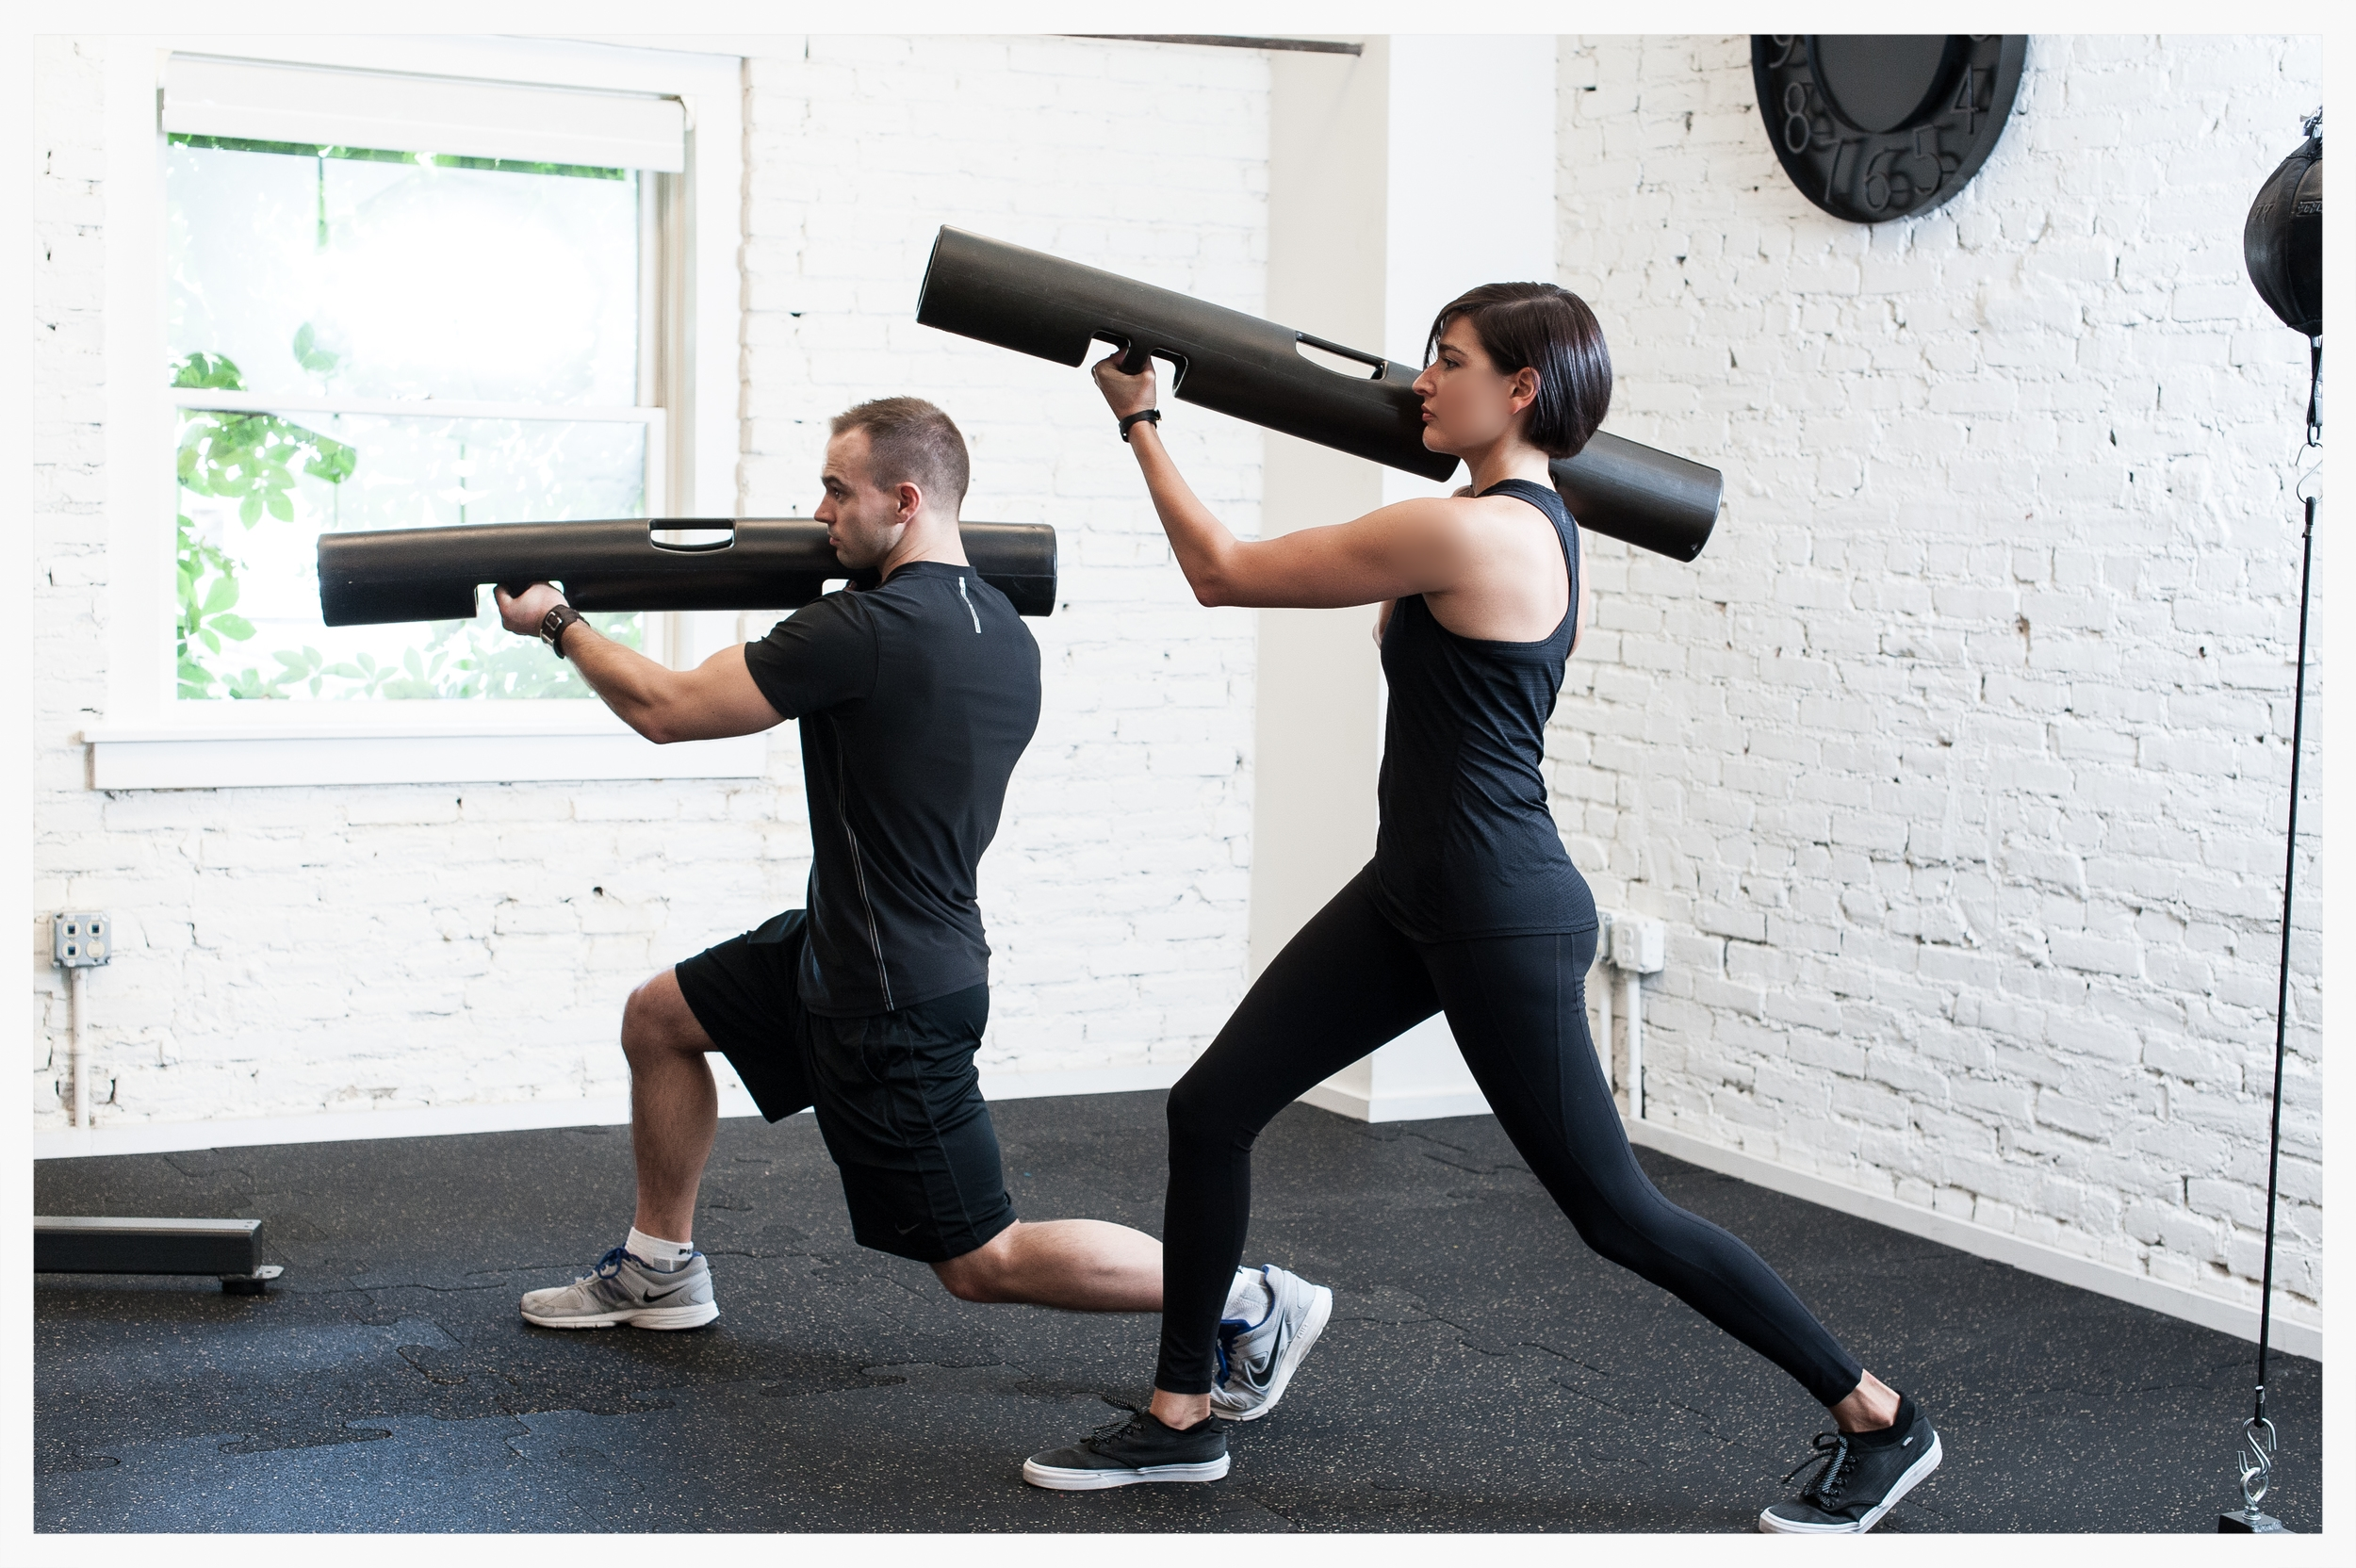 vipr tubes personal training weights functional